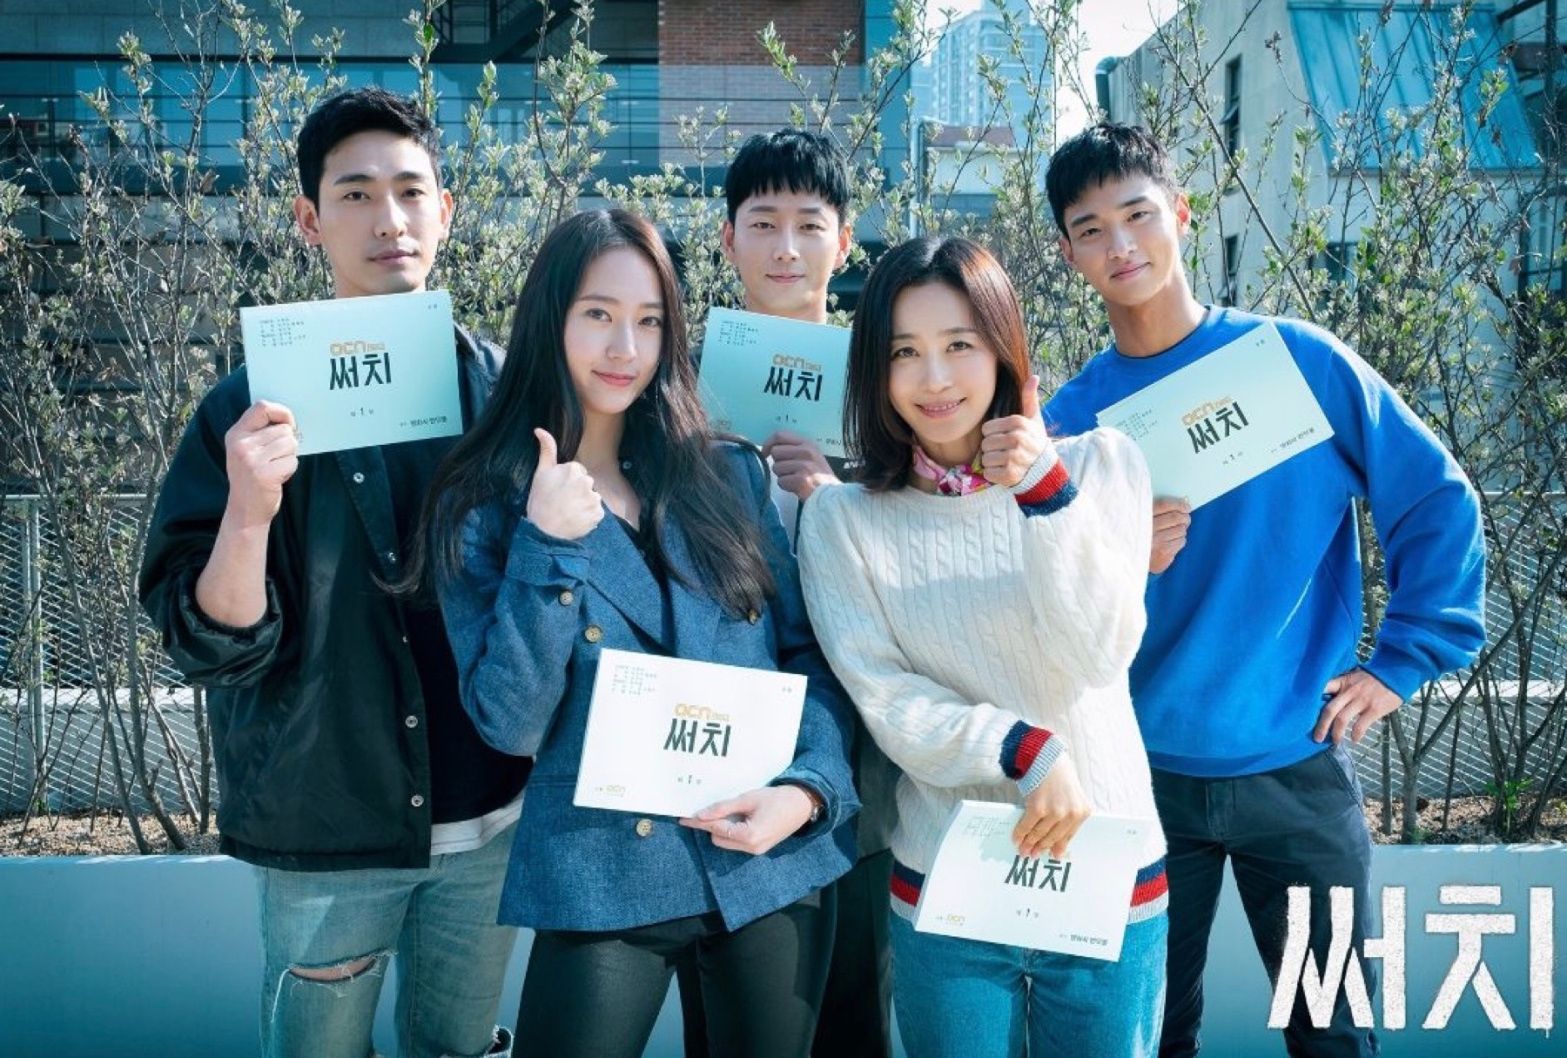 OCN's Search cast gathered together for the first script reading in April 2020.